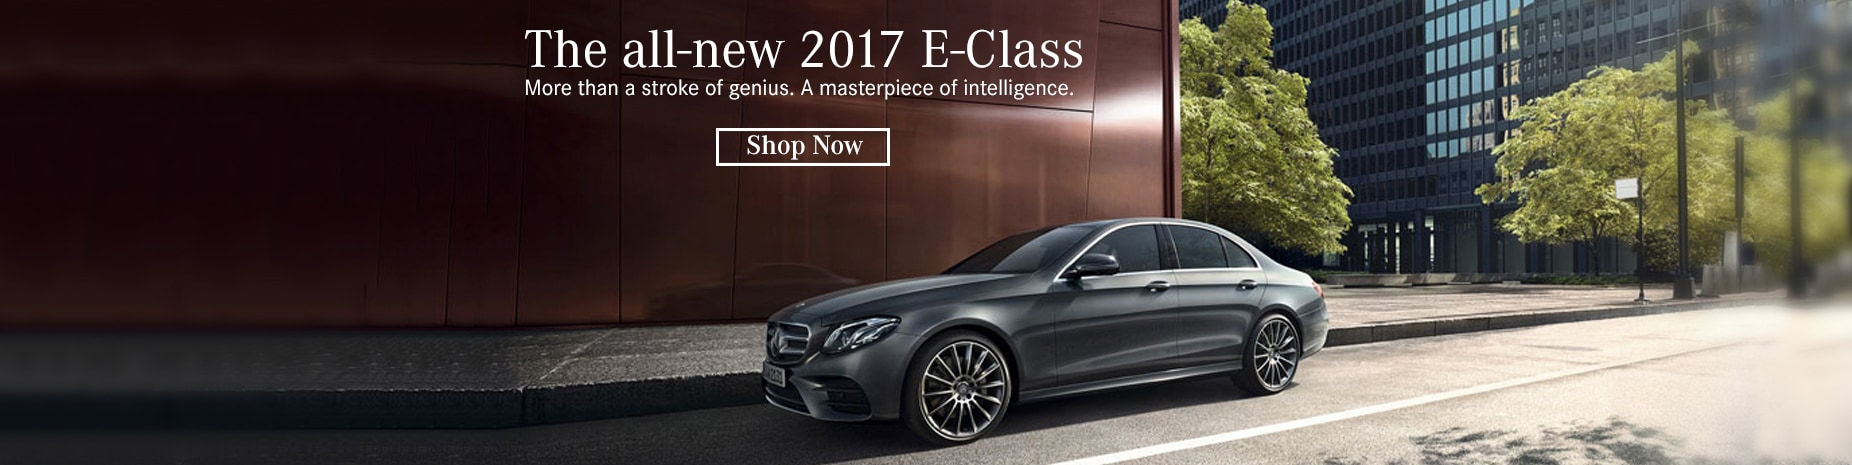 2017 mercedes benz e class mercedes tampa e class for Mercedes benz dealer in tampa fl